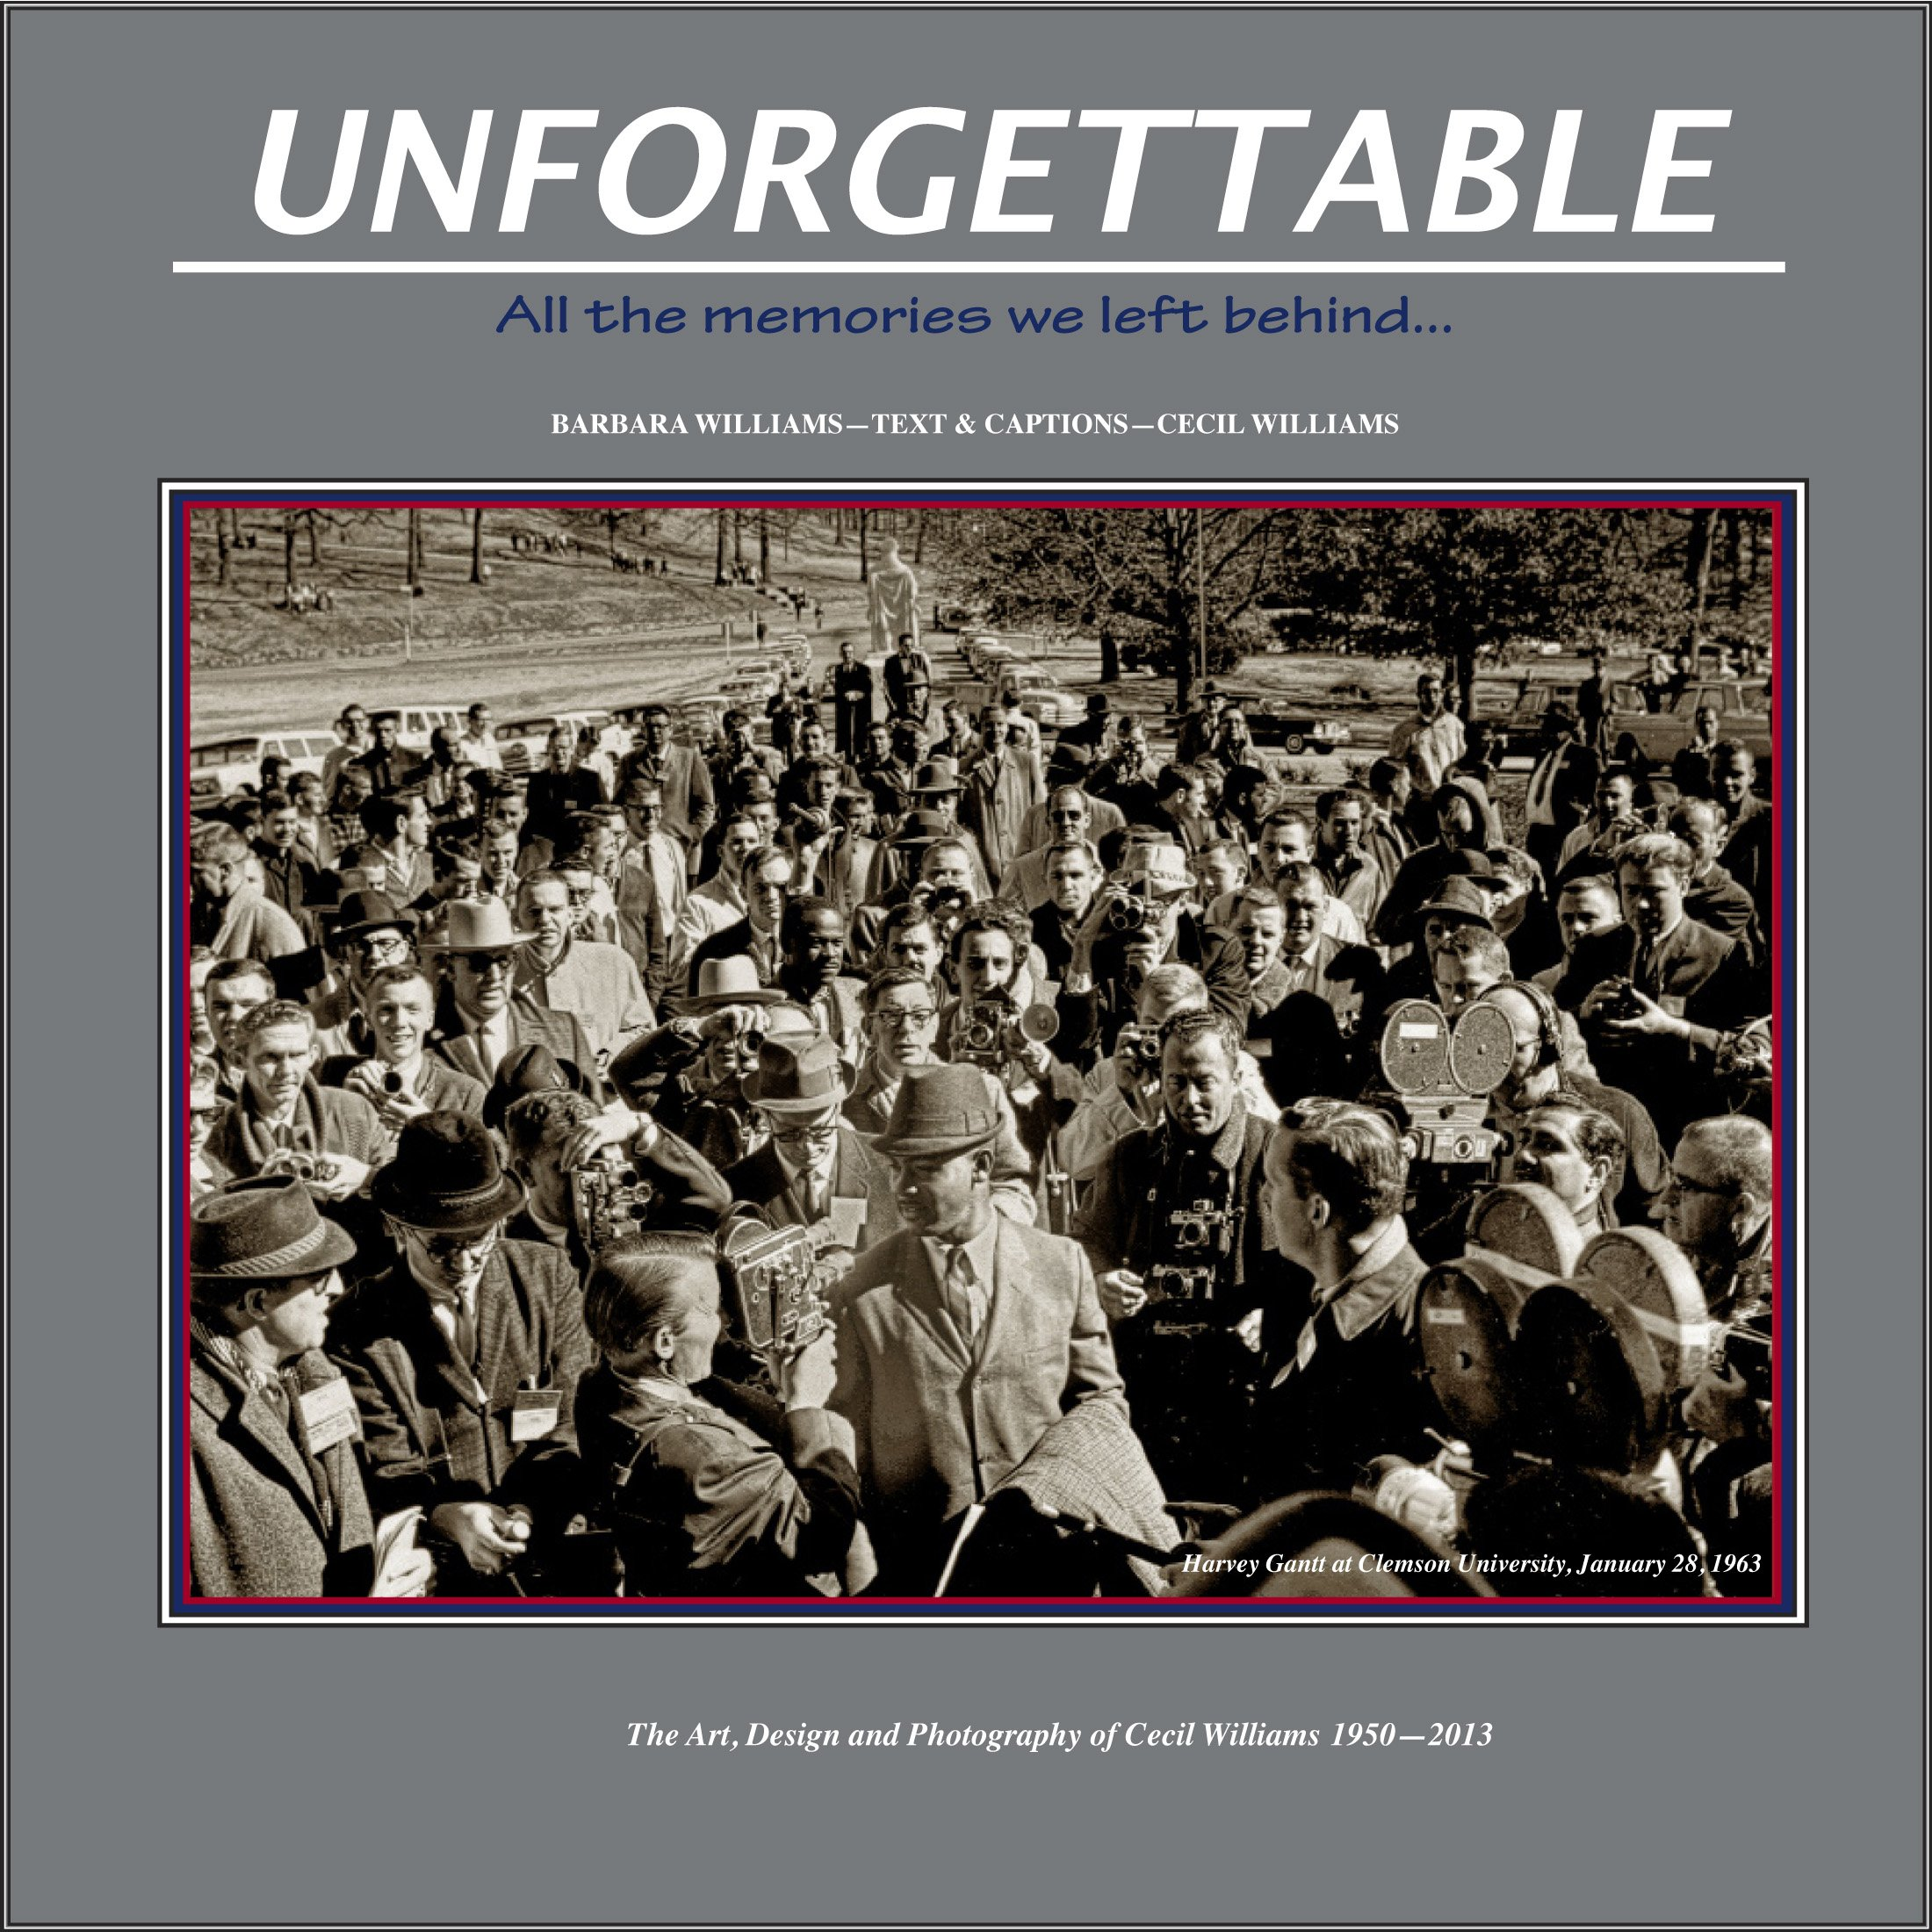 """Unforgettable: Celebrating a Time of Life, Hope and Bravery"" A Traveling Exhibit by Cecil Williams"